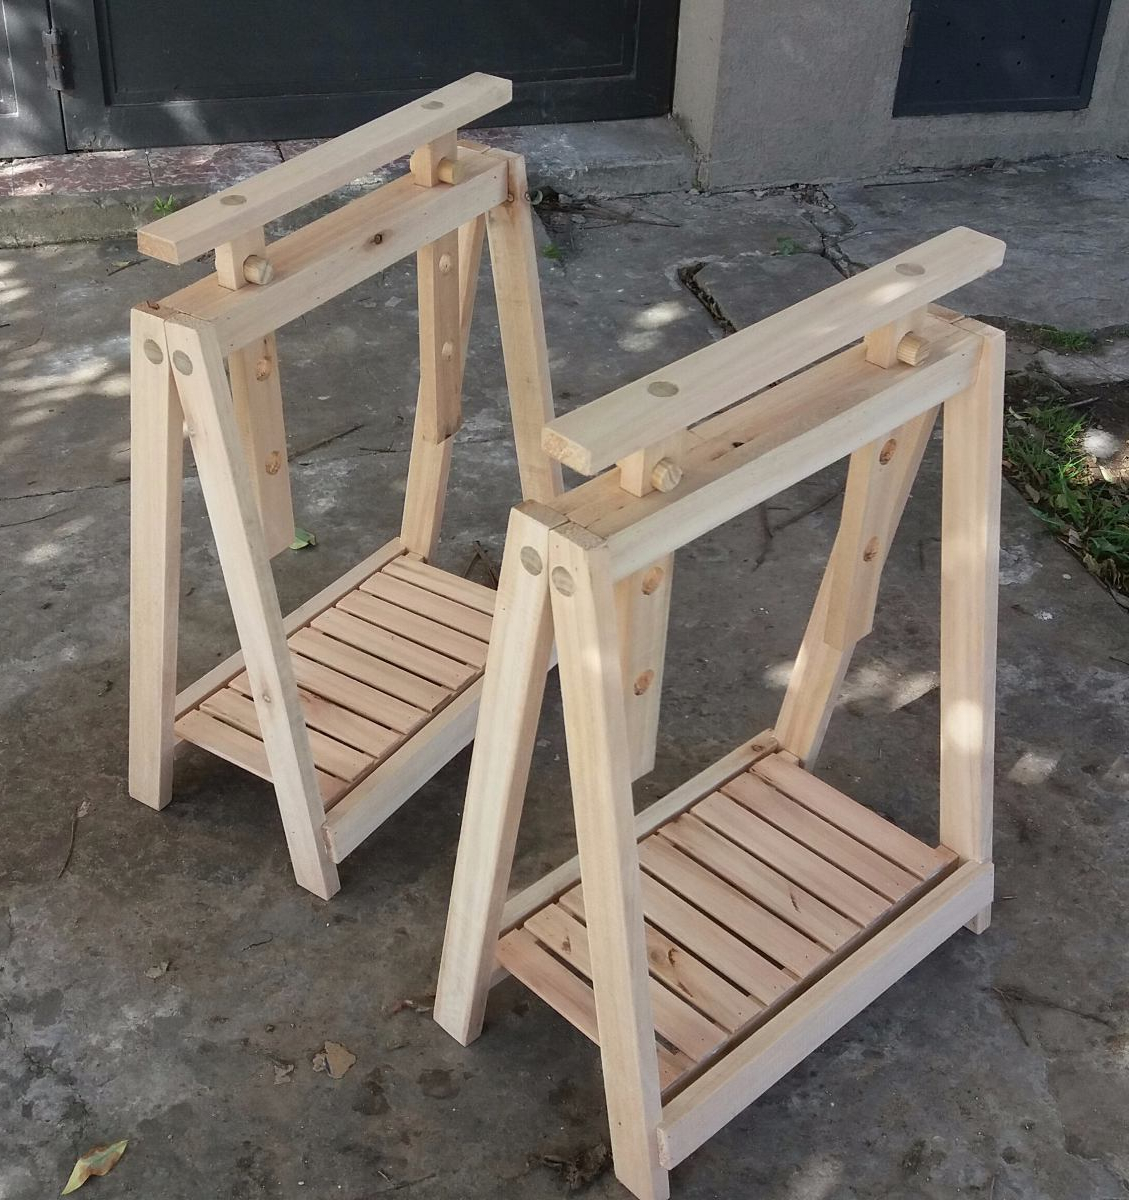 Caballete Regulable D0dg Caballetes De Madera Regulables En Altura 950 00 En Mercado Libre